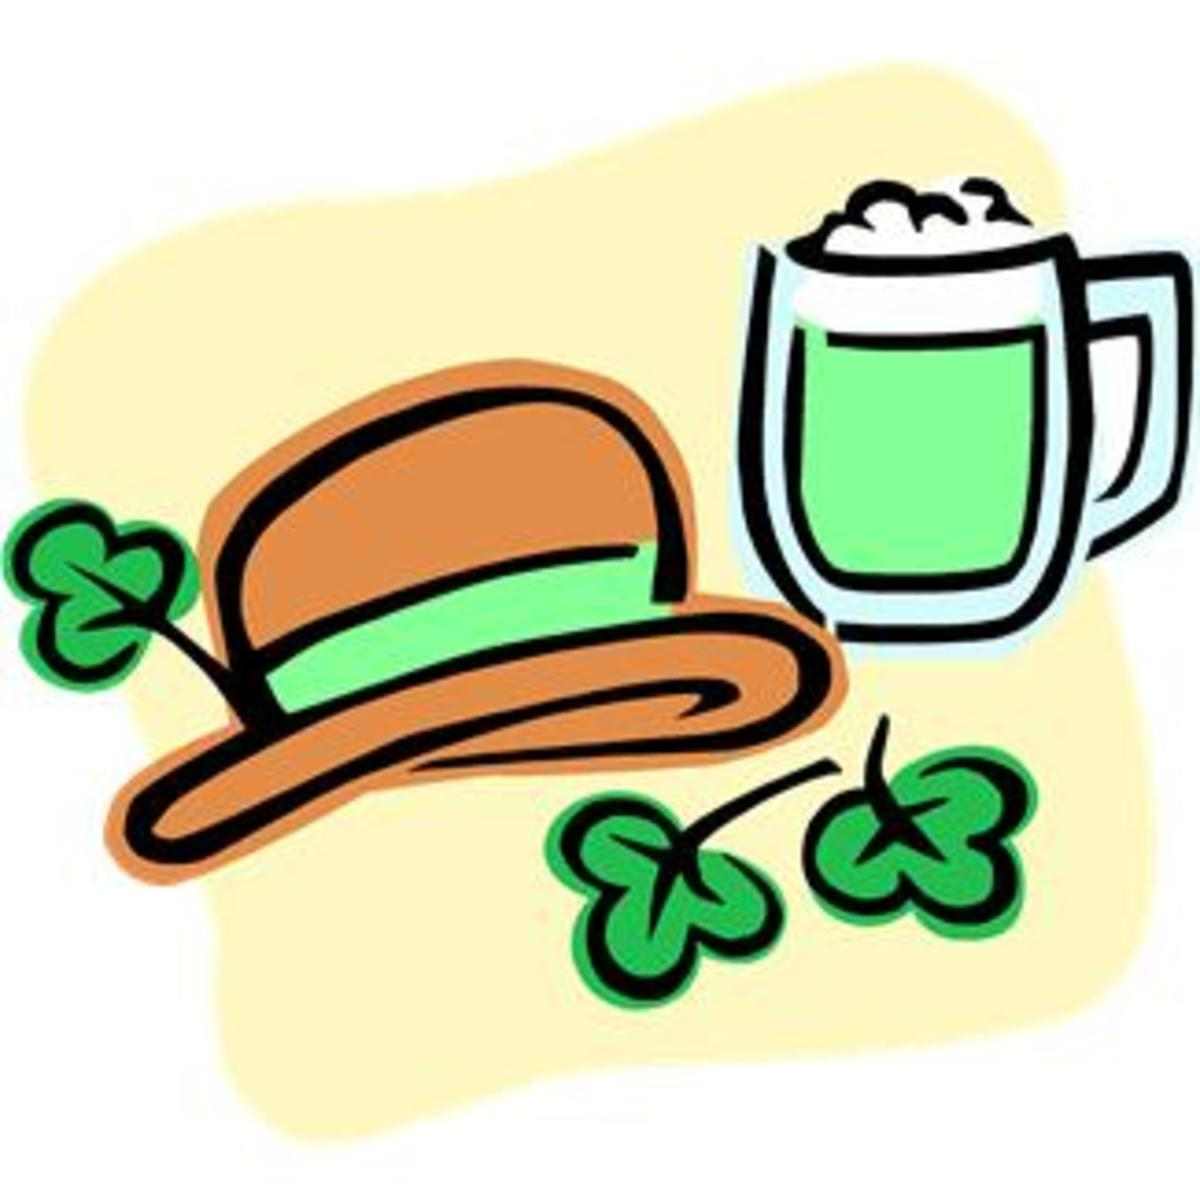 Green Beer, Leprechaun Hat and Shamrock Images